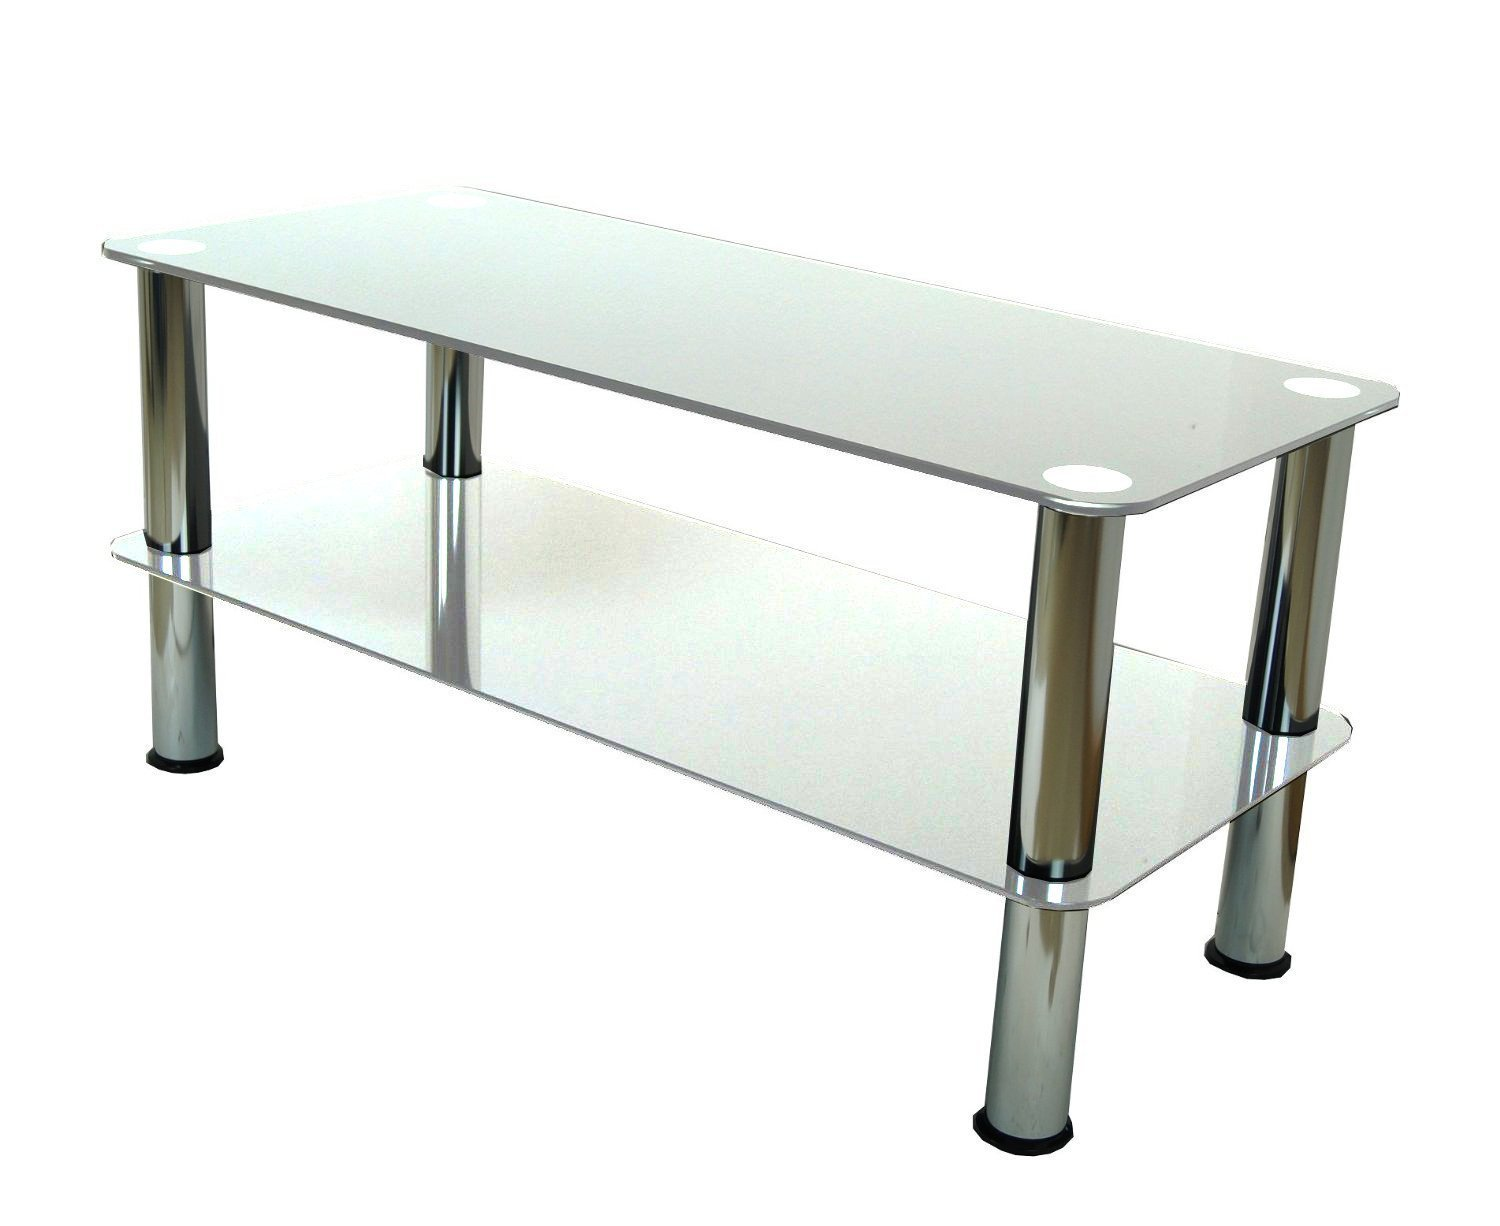 Mountright Coffee Table/TV Stand/Side Table (Black Glass - Silver Leg) UMSCT